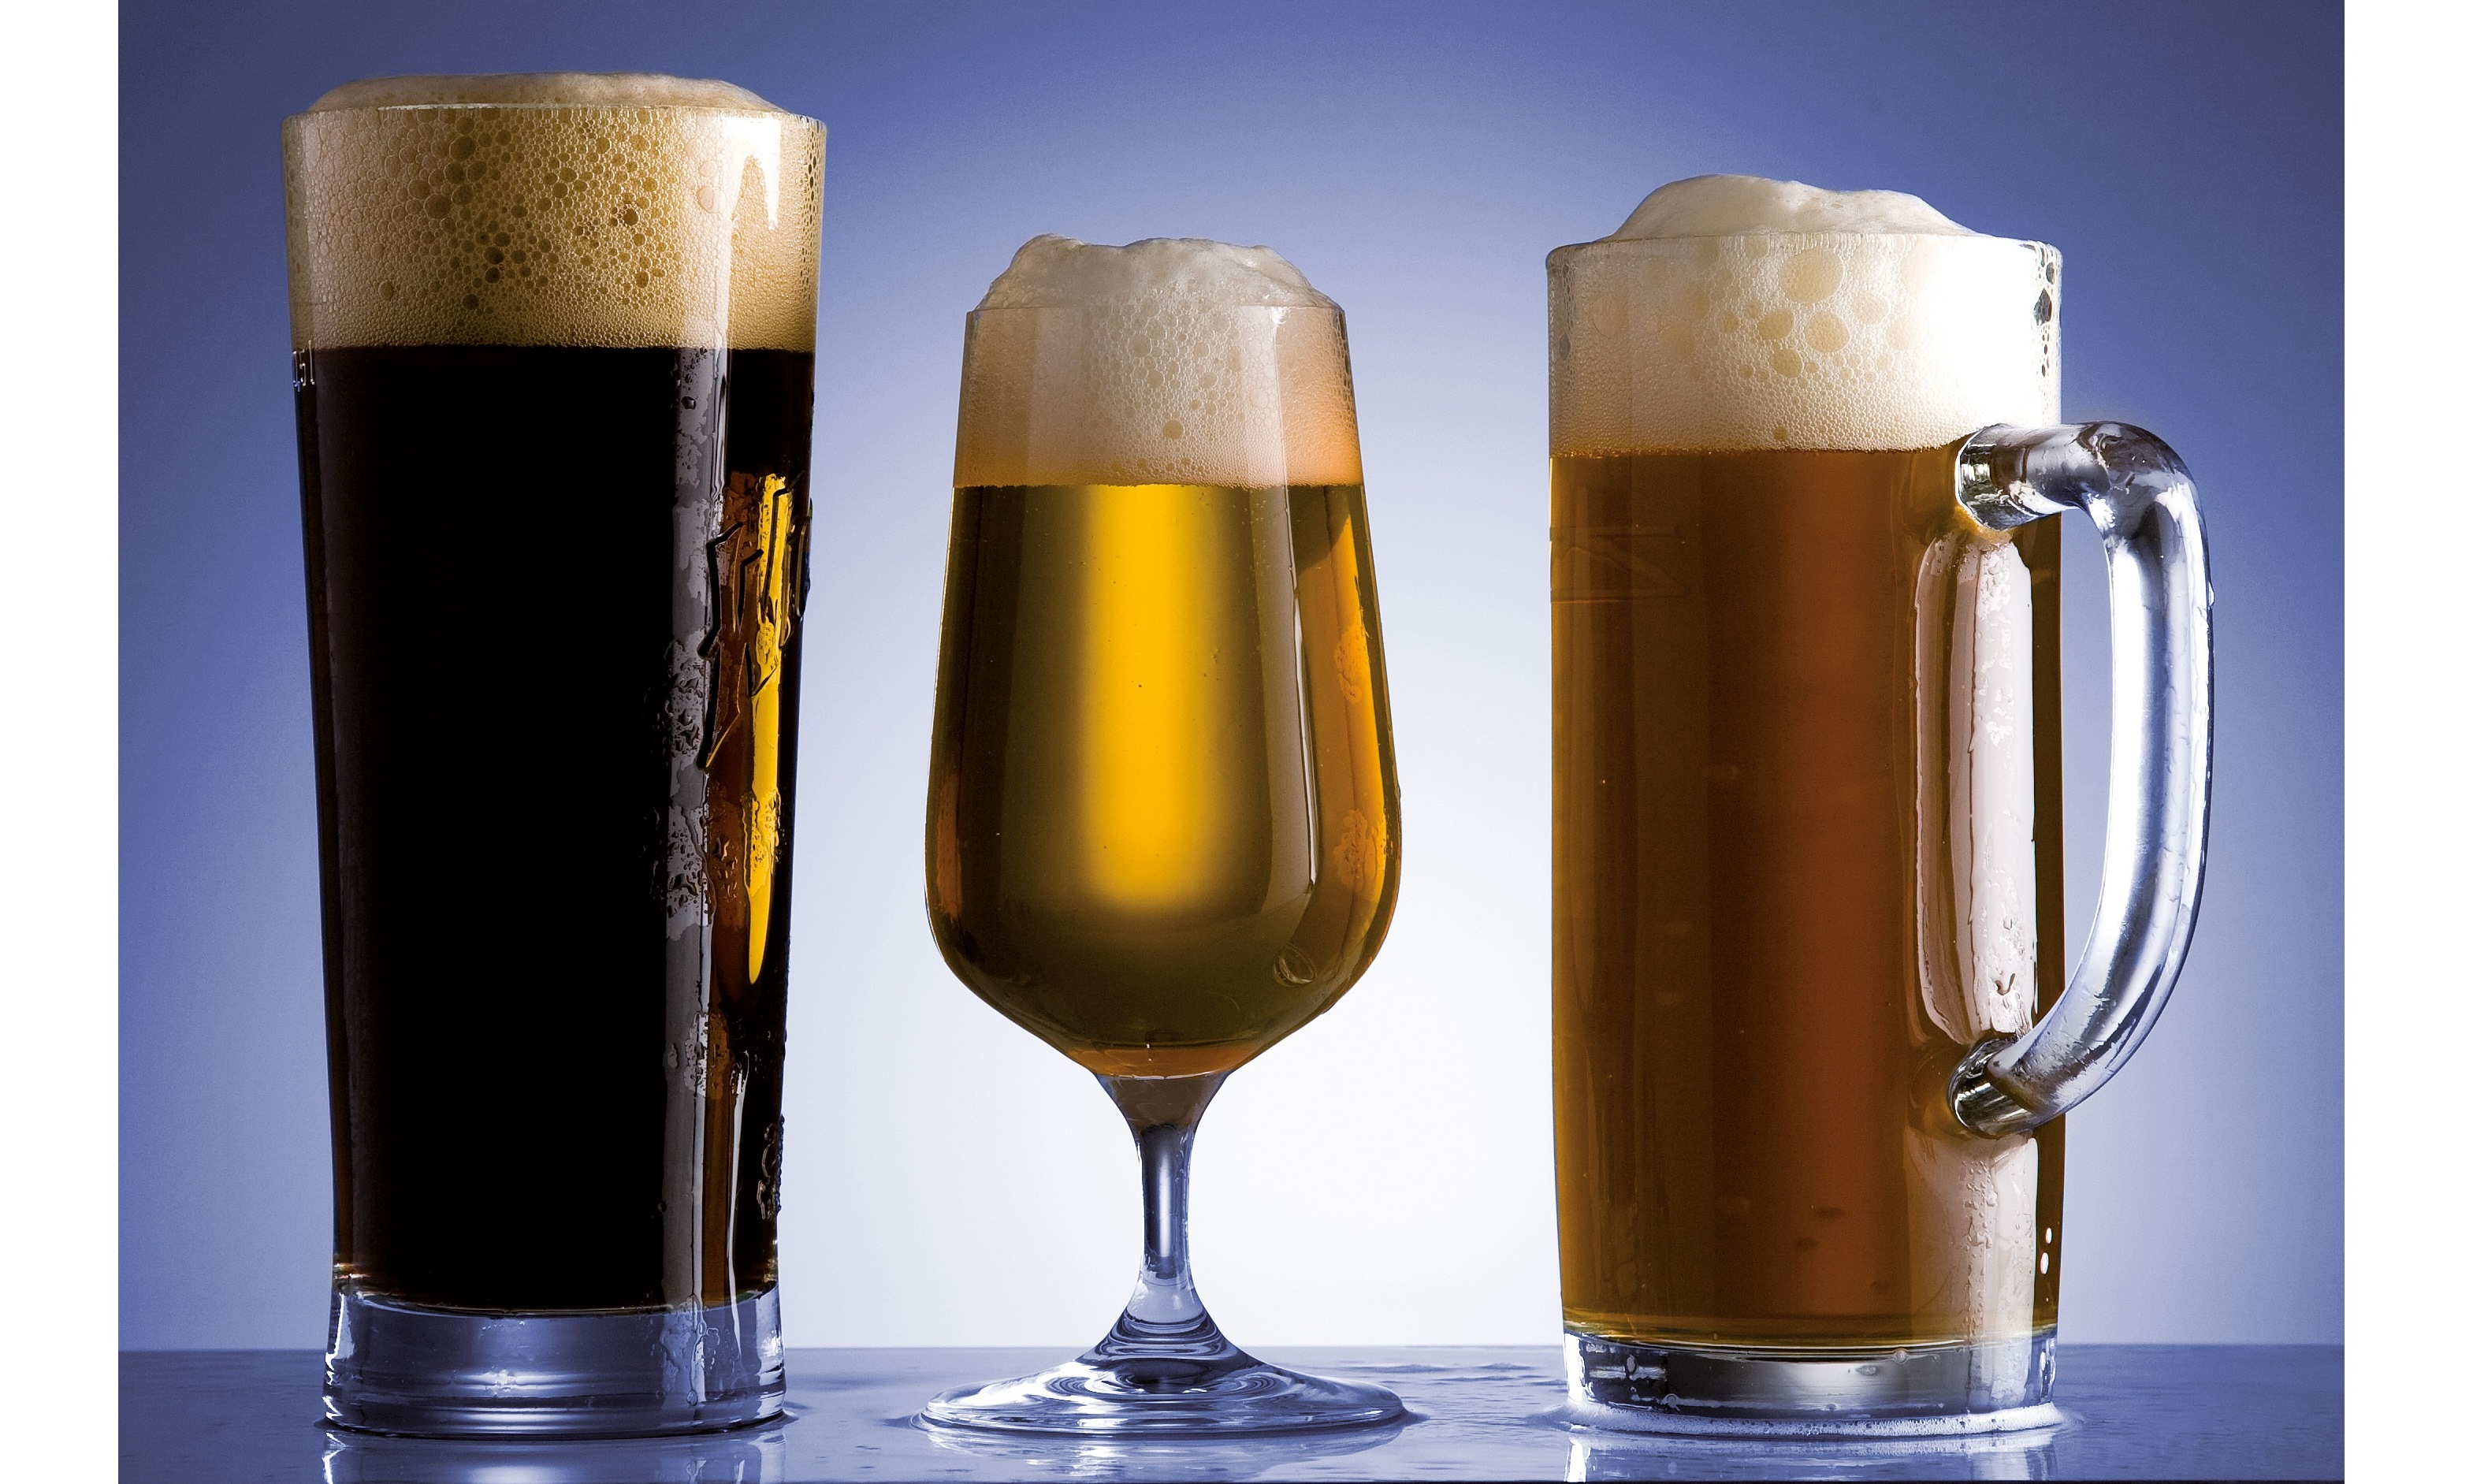 determination of ethanol in beer by gas chromatography